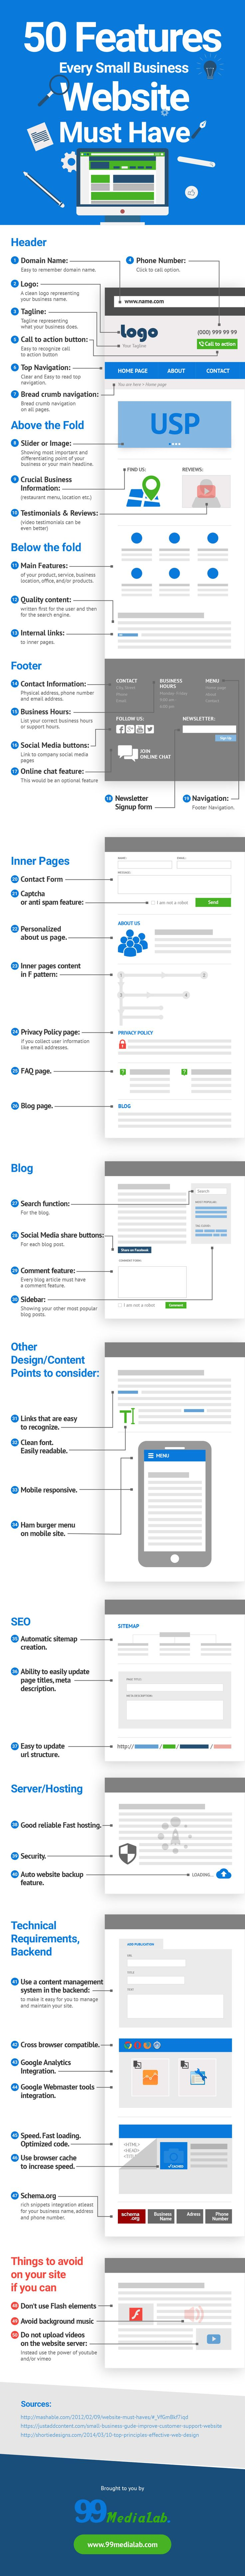 50 Features Your Small Business Website Should Have (infographic)